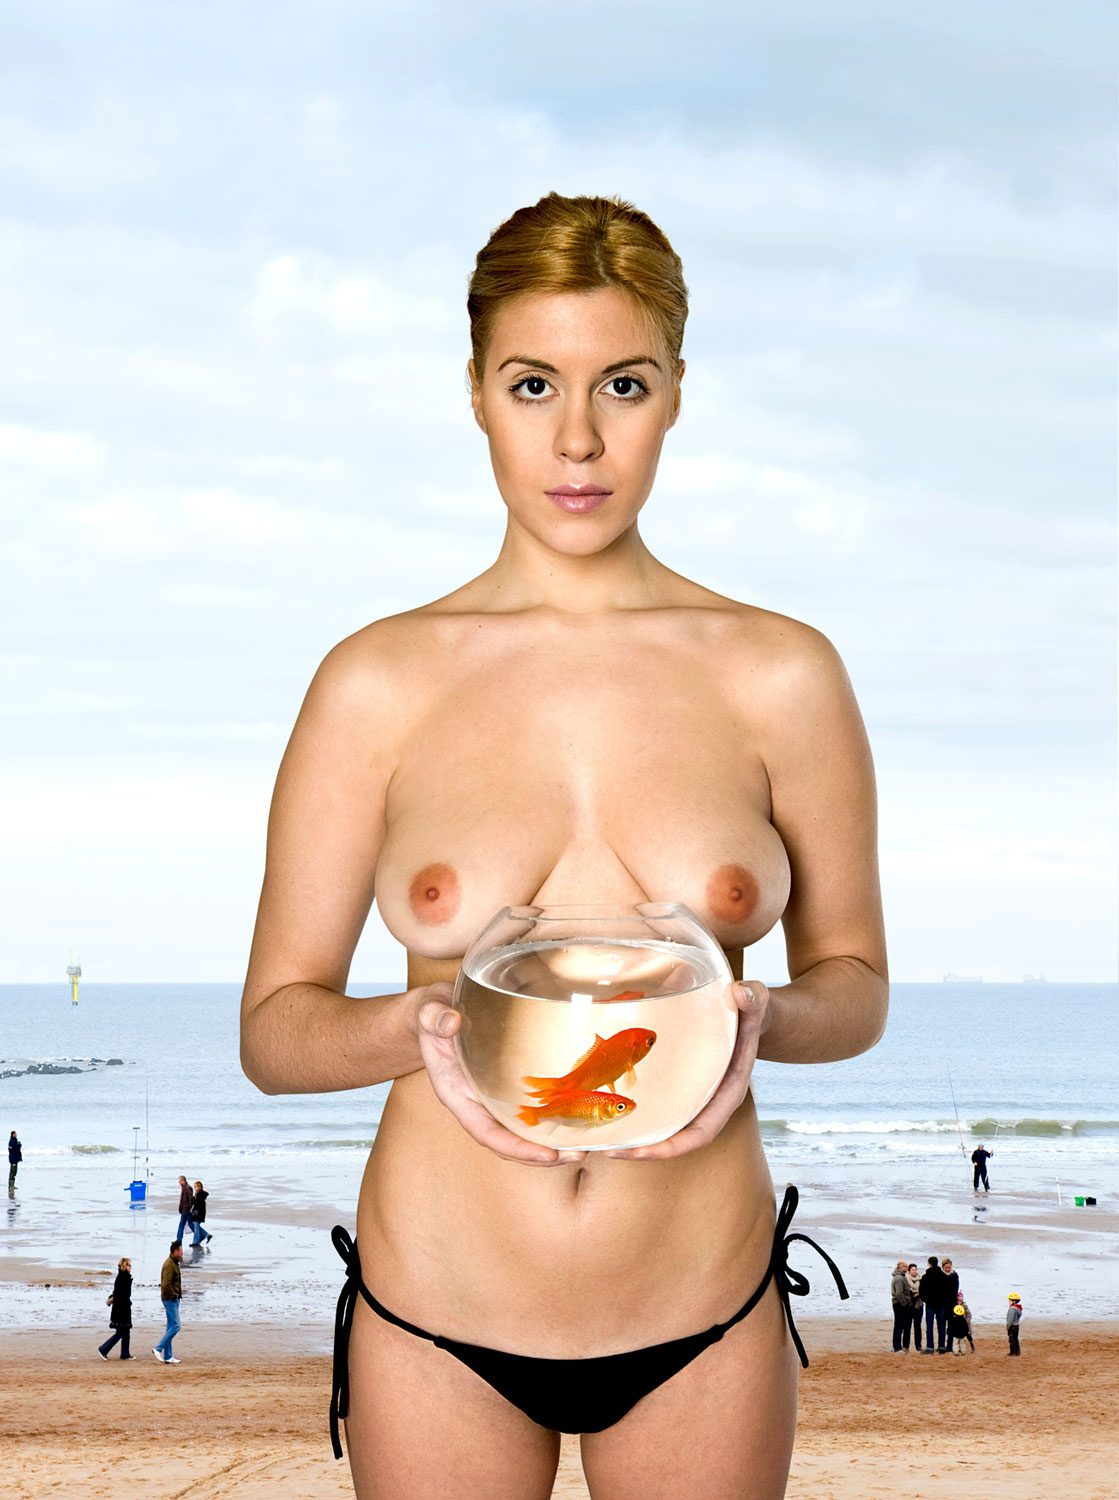 Untitled, For a Definition of The Nude Series (Woman w/ Goldfish)